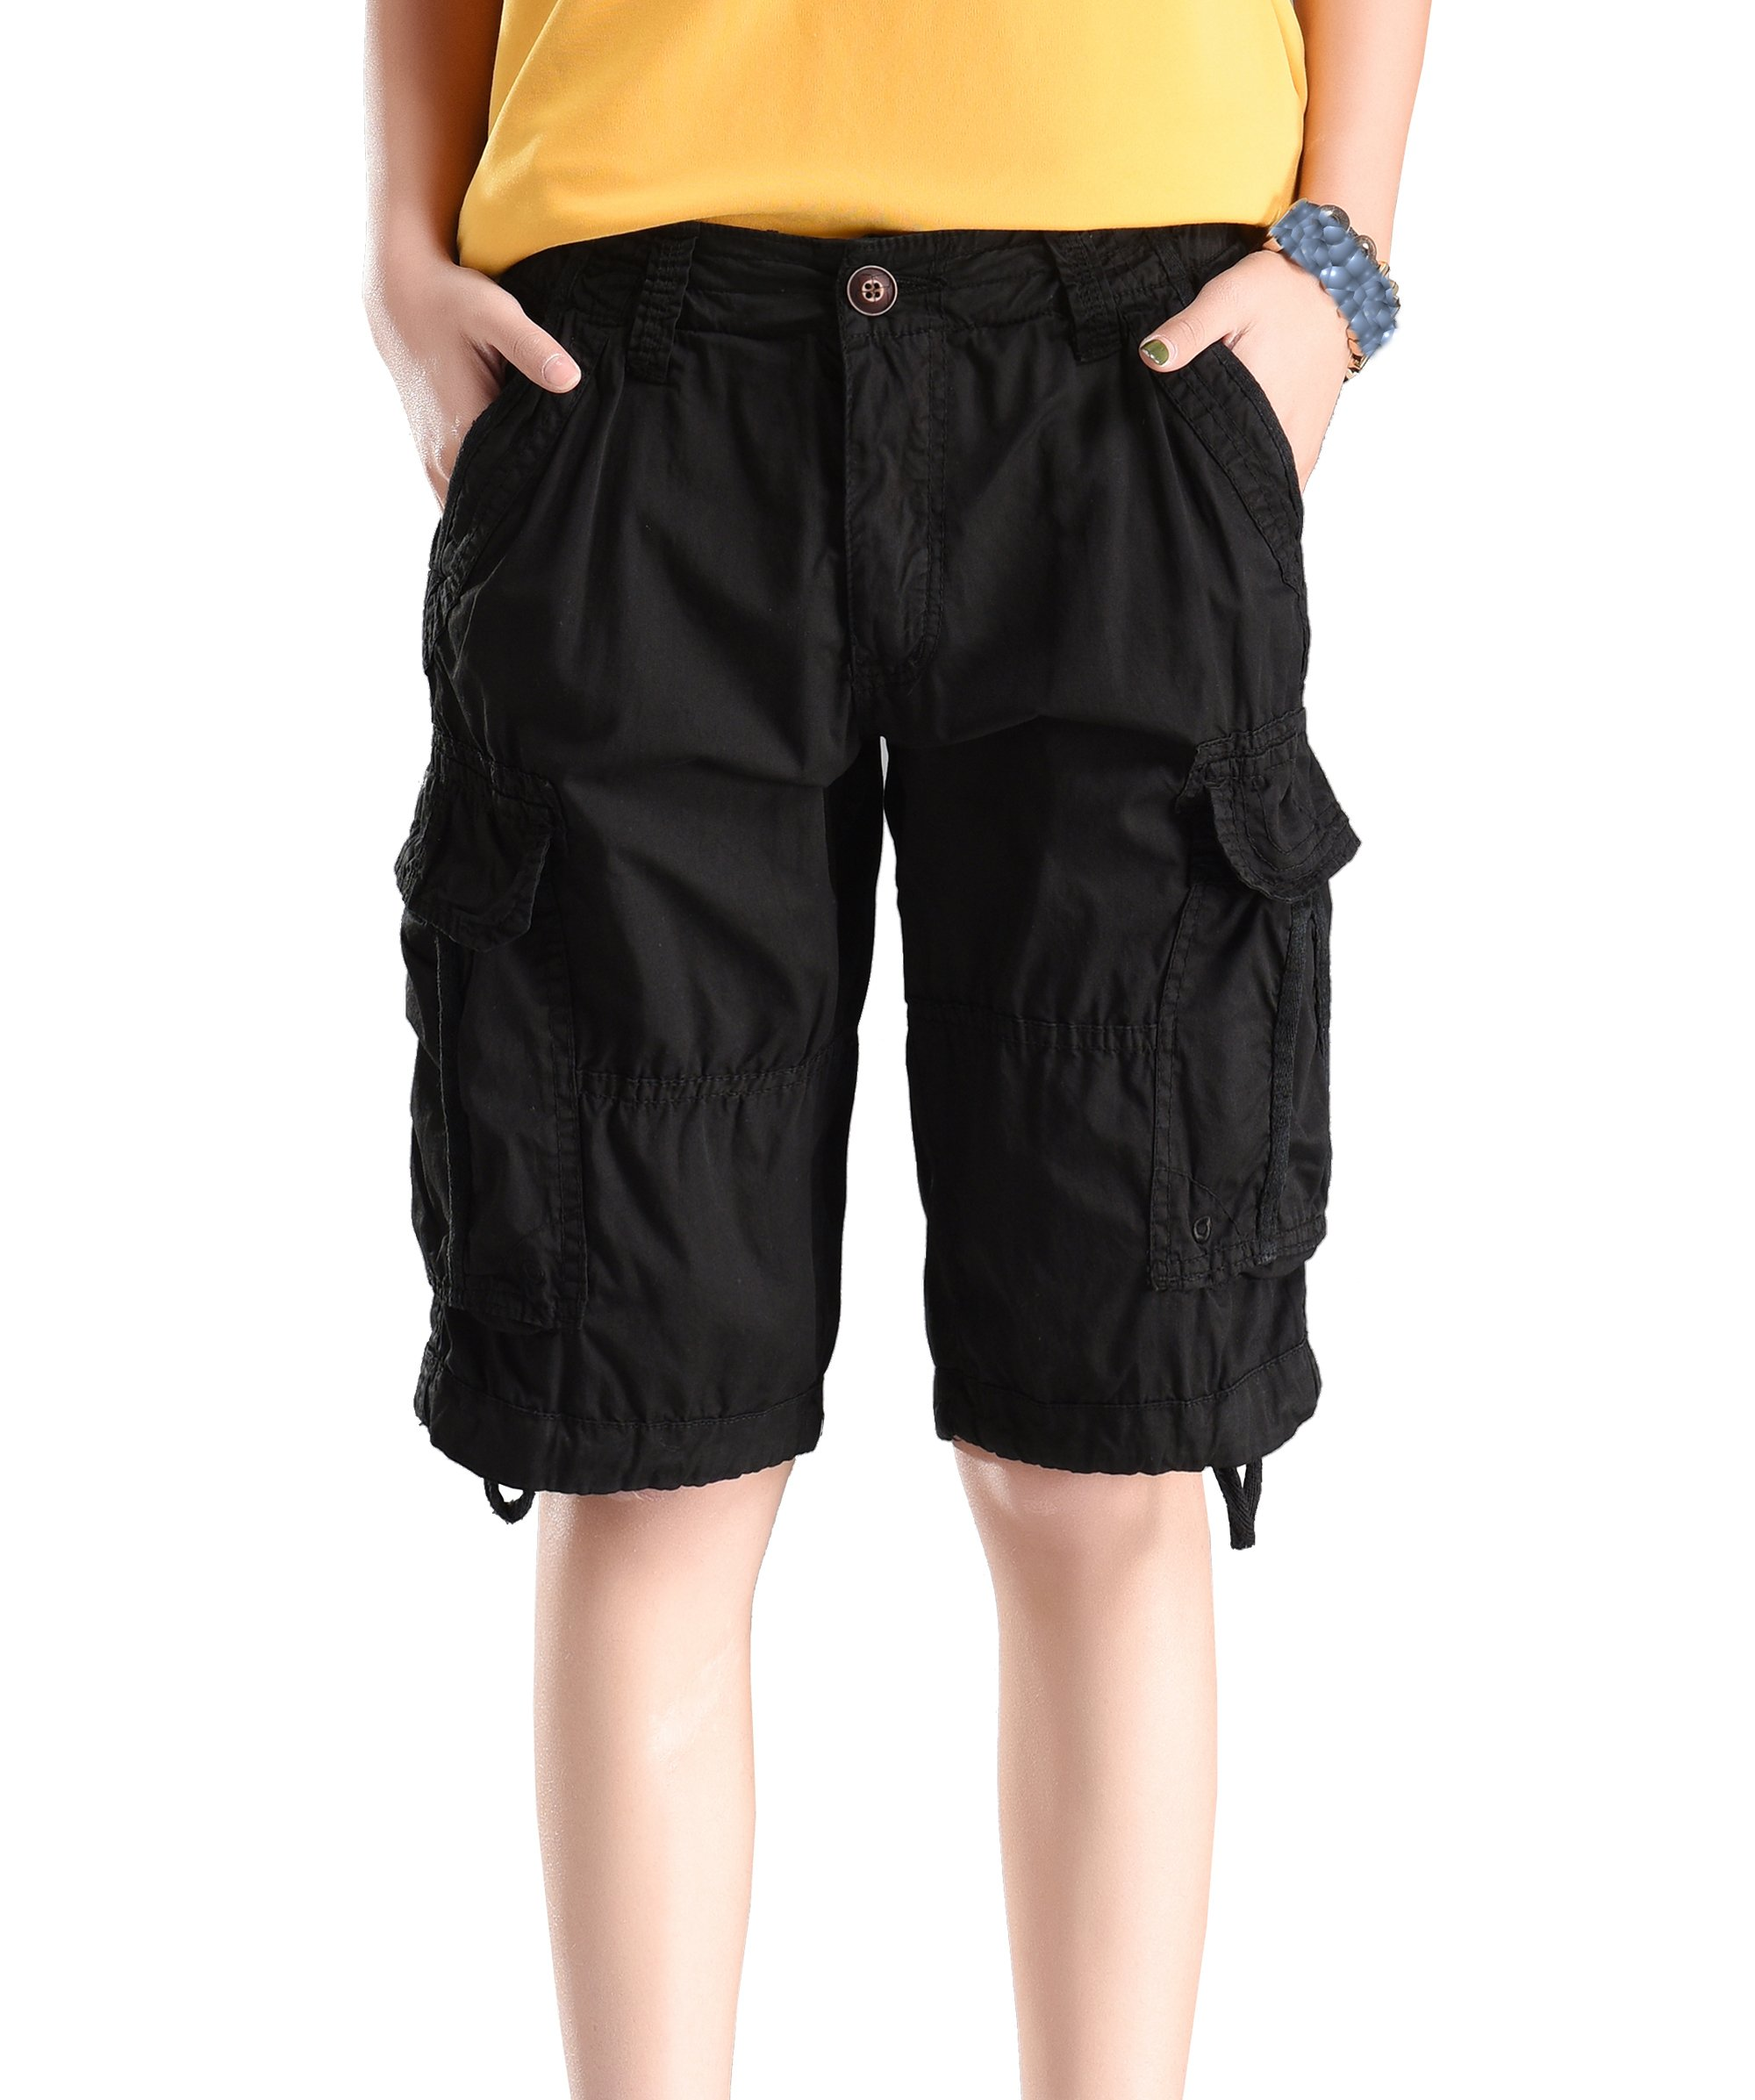 Fuwenni Women's Casual Loose Fit Relaxed Sports Active Wear Bermuda Cargo Shorts Multi Pockets Black US 12/Asia 34